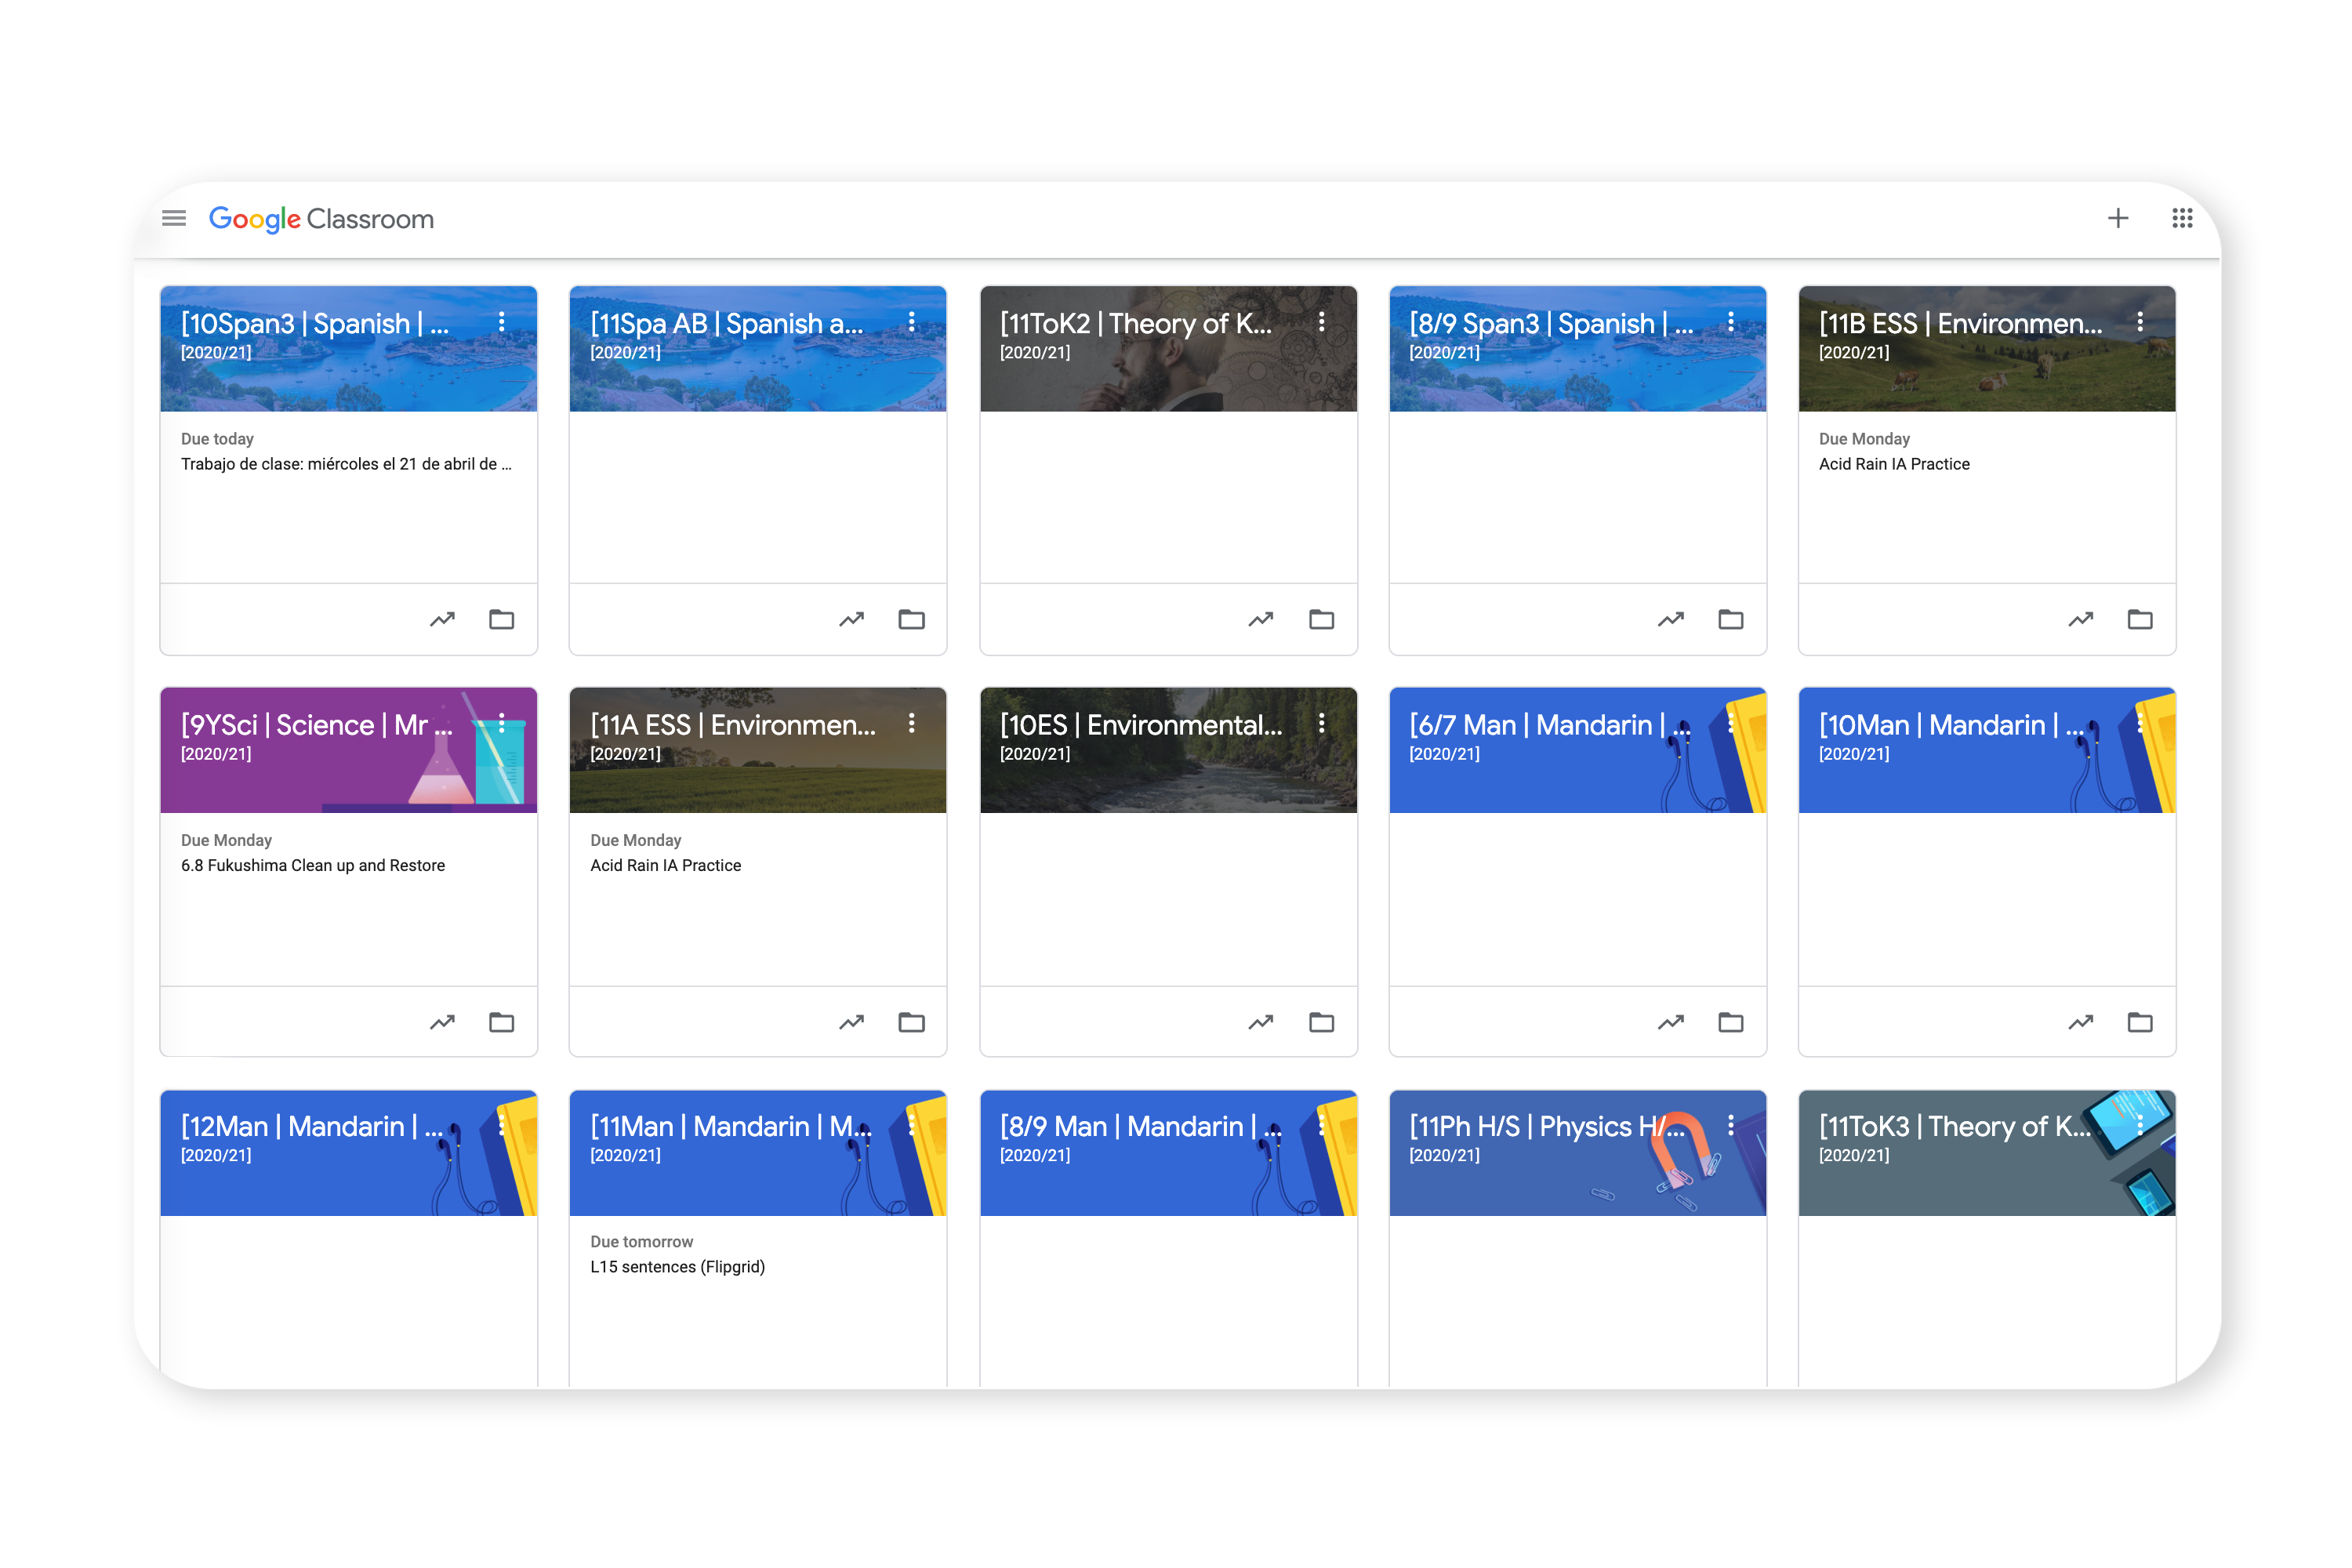 Google Workspace Calendar view